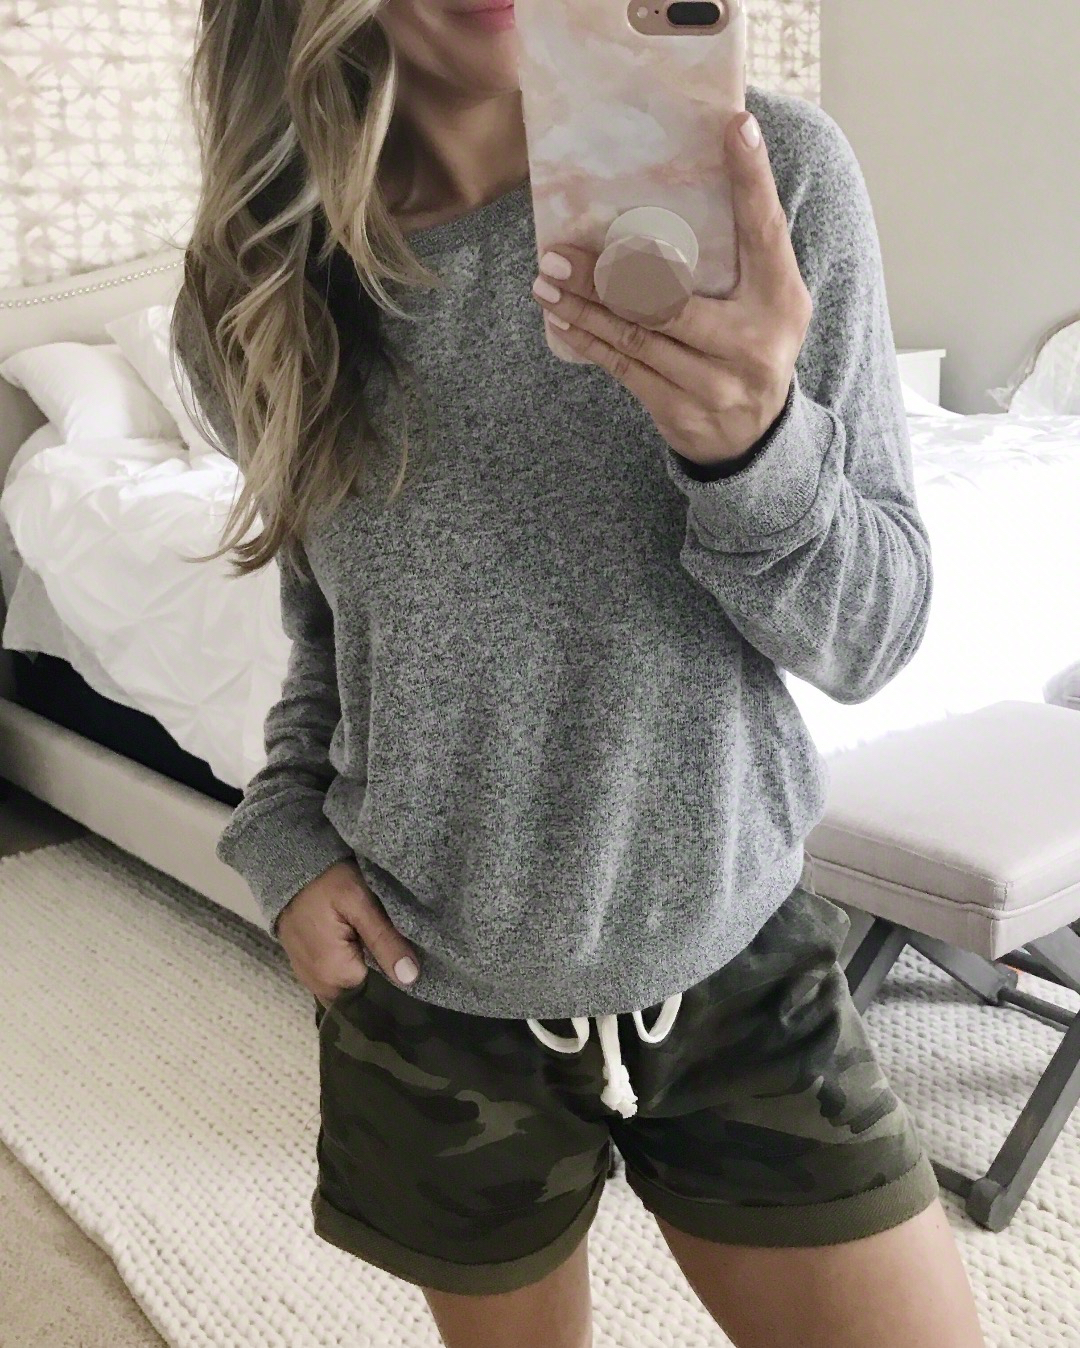 Camo shorts and grey pullover